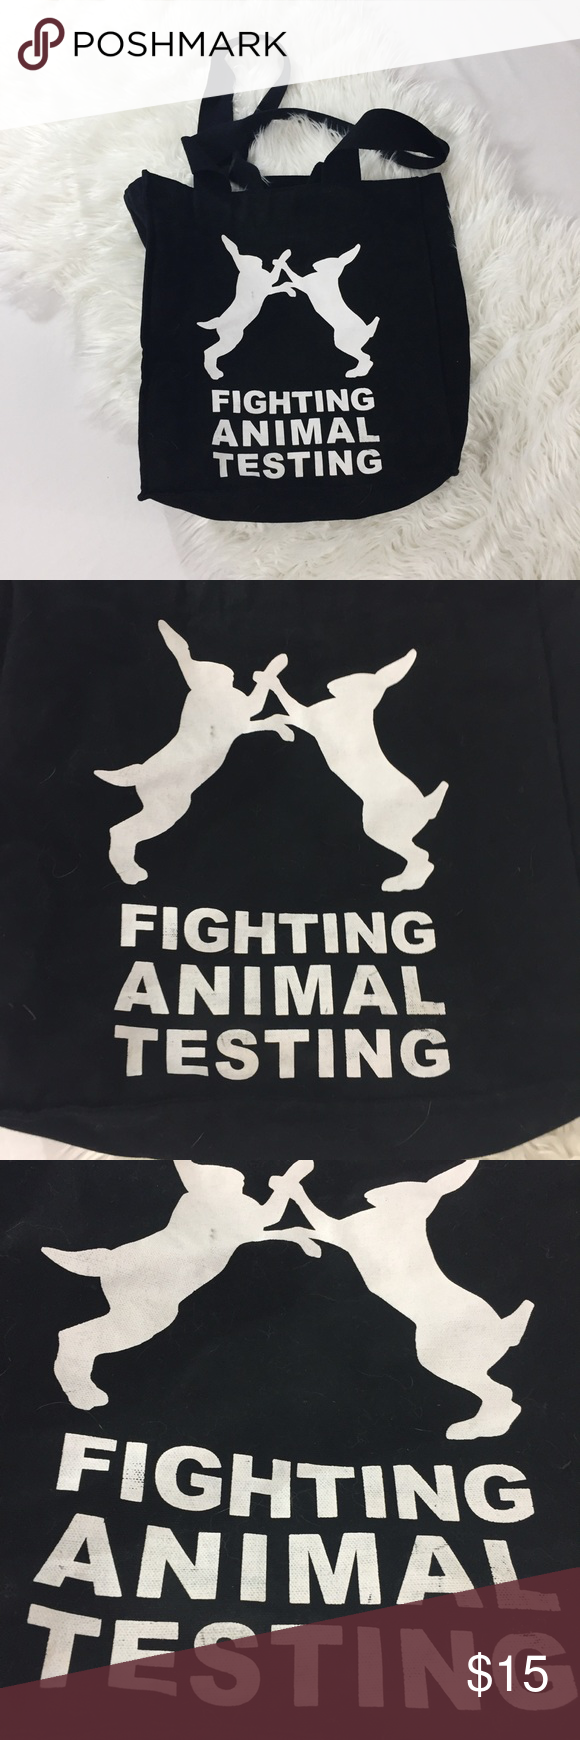 0c8c9785f5 3 for  24 Lush Fighting Animal Testing Tote Good preowned condition. No  tears